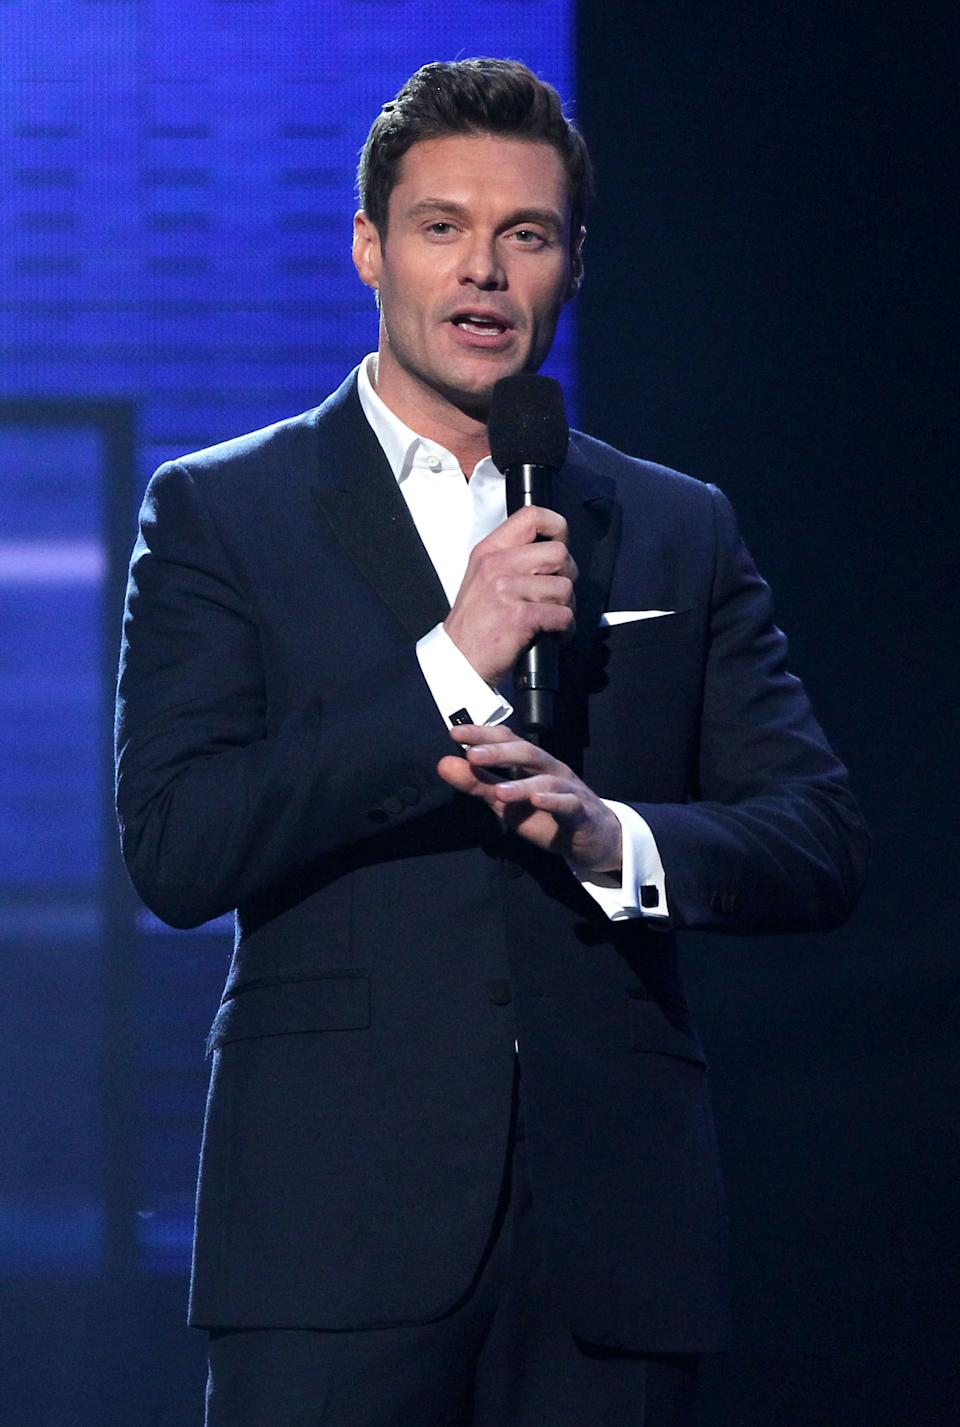 Ryan Seacrest presents the award for favorite male artist - pop/rock at the 40th Annual American Music Awards on Sunday, Nov. 18, 2012, in Los Angeles. (Photo by Matt Sayles/Invision/AP)